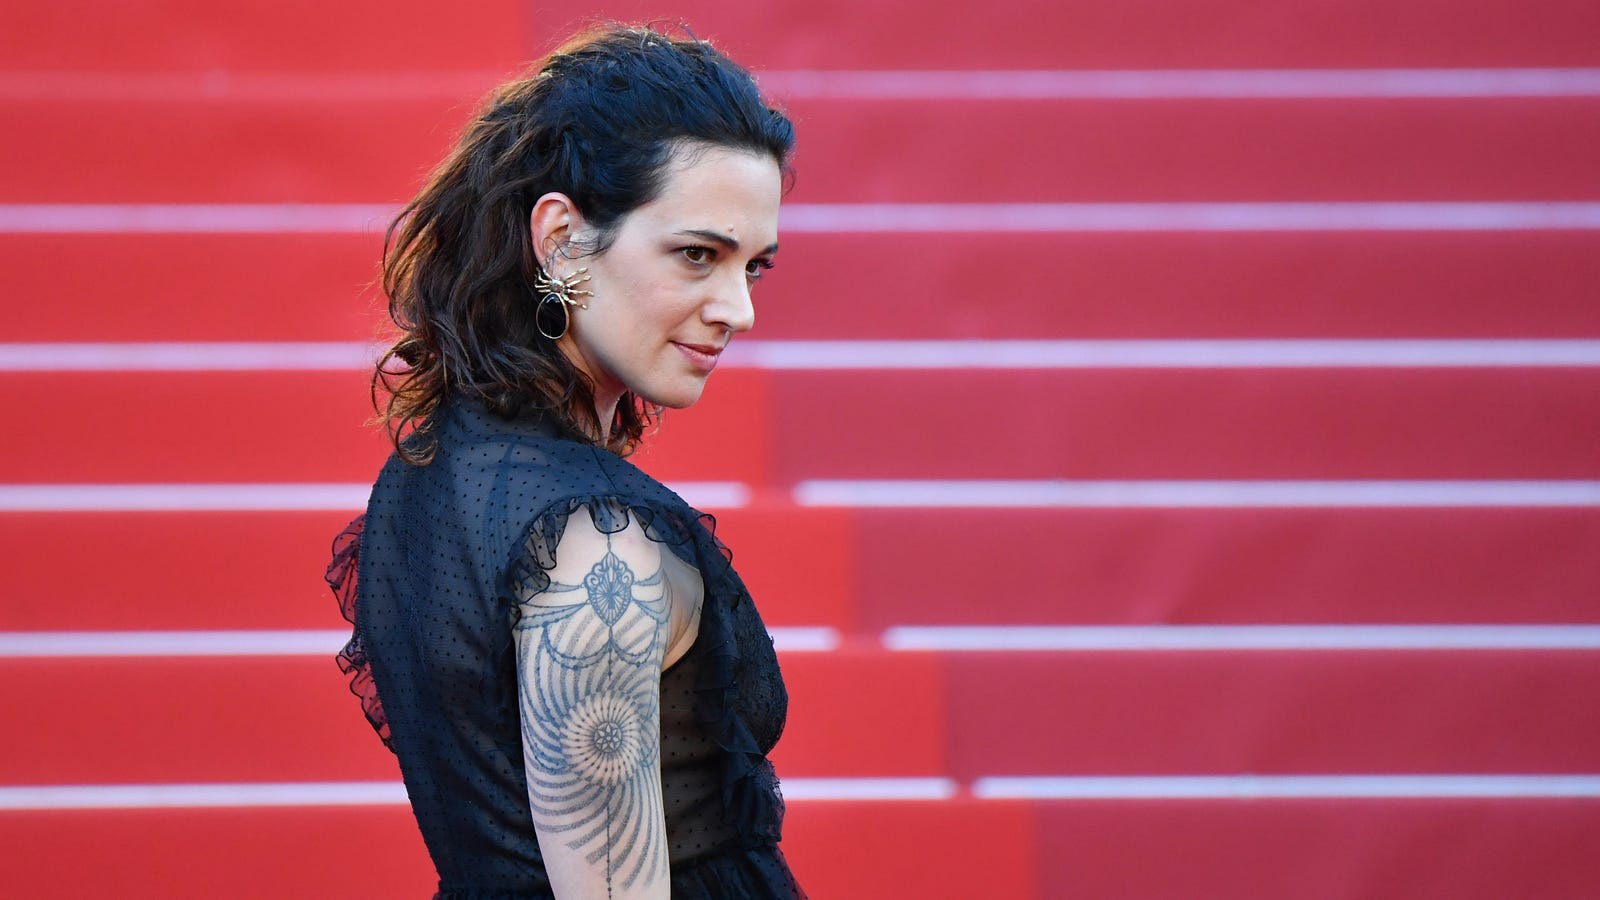 Asia Argento flees Italy amid victim-blaming backlash over Weinstein allegations